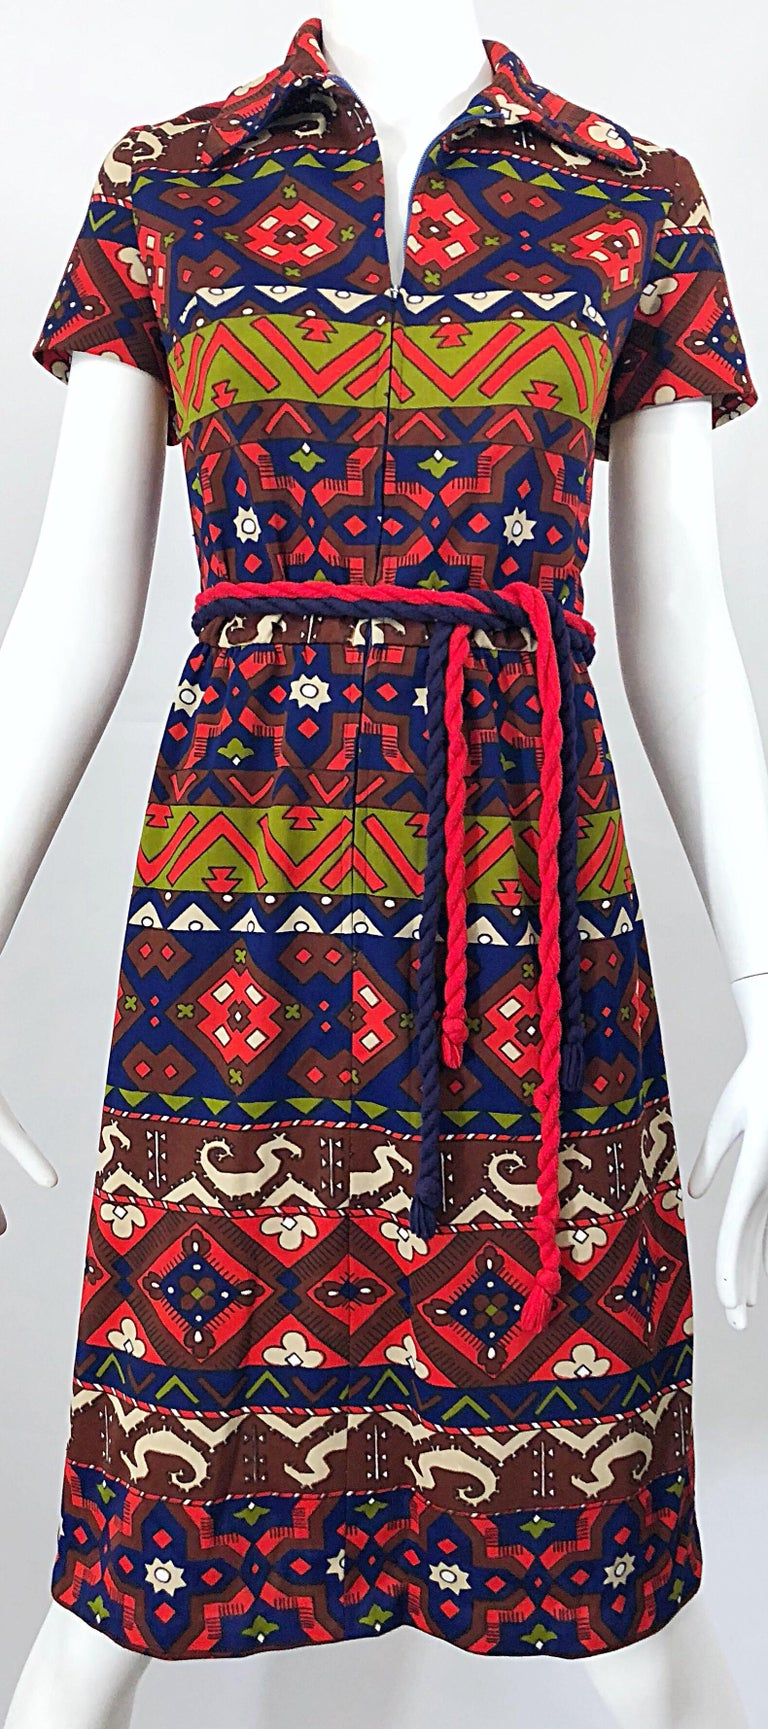 1970s Aztec Novelty Print Amazing Vintage 70s Knit Rope Belted Shirt Dress For Sale 4